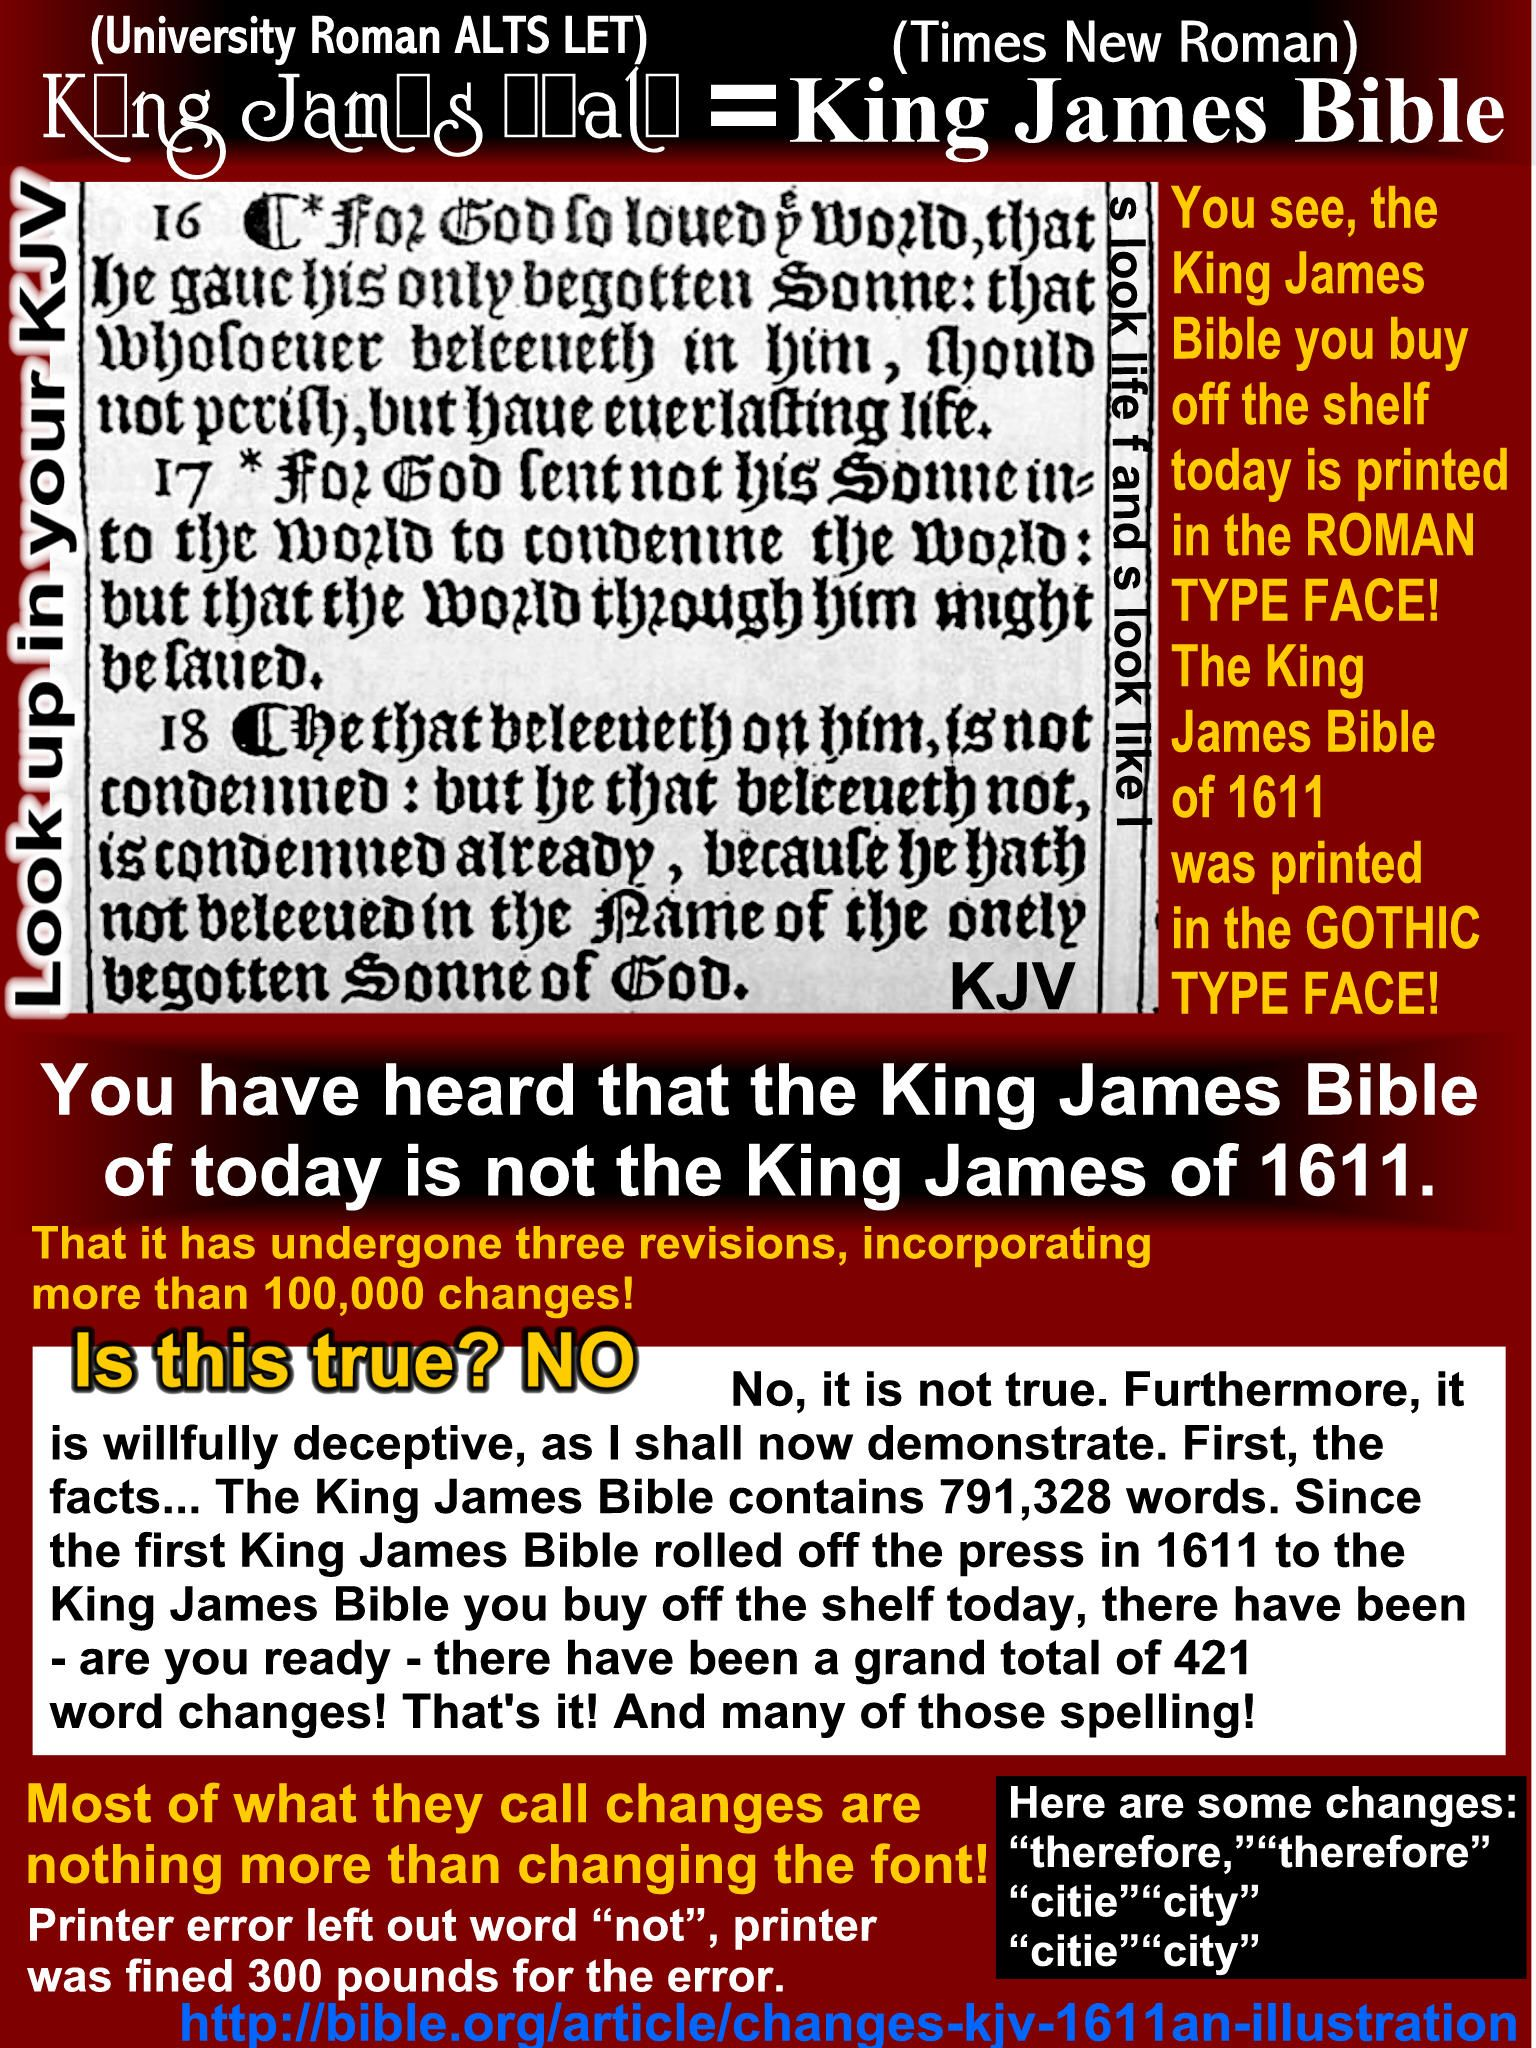 Changes in the King James Bible? Font, spelling and printer